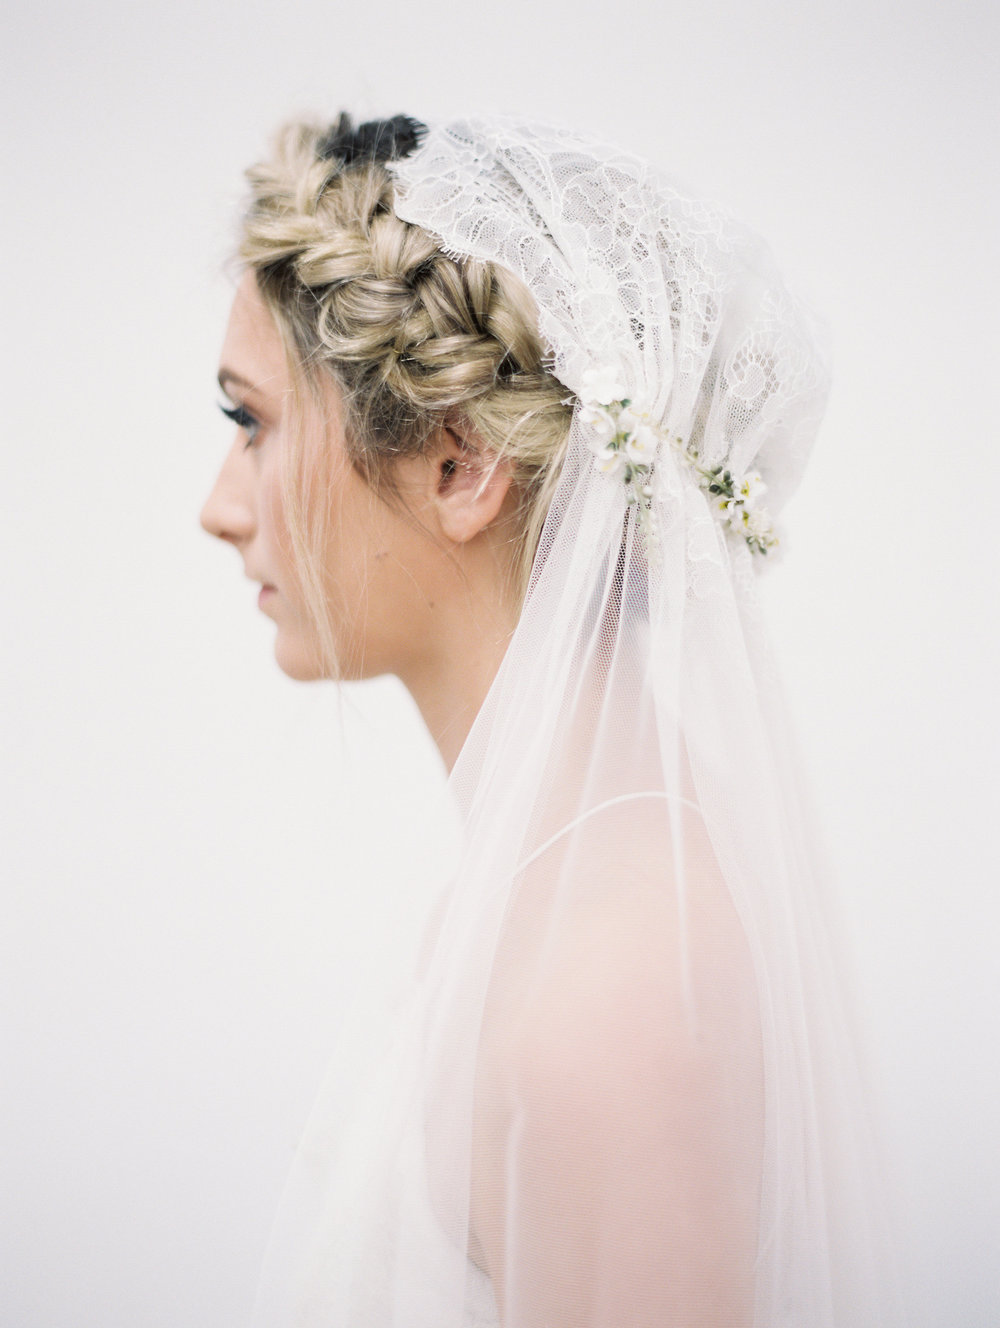 flower-veil-lace-cap-veil-bridal-hairstyle